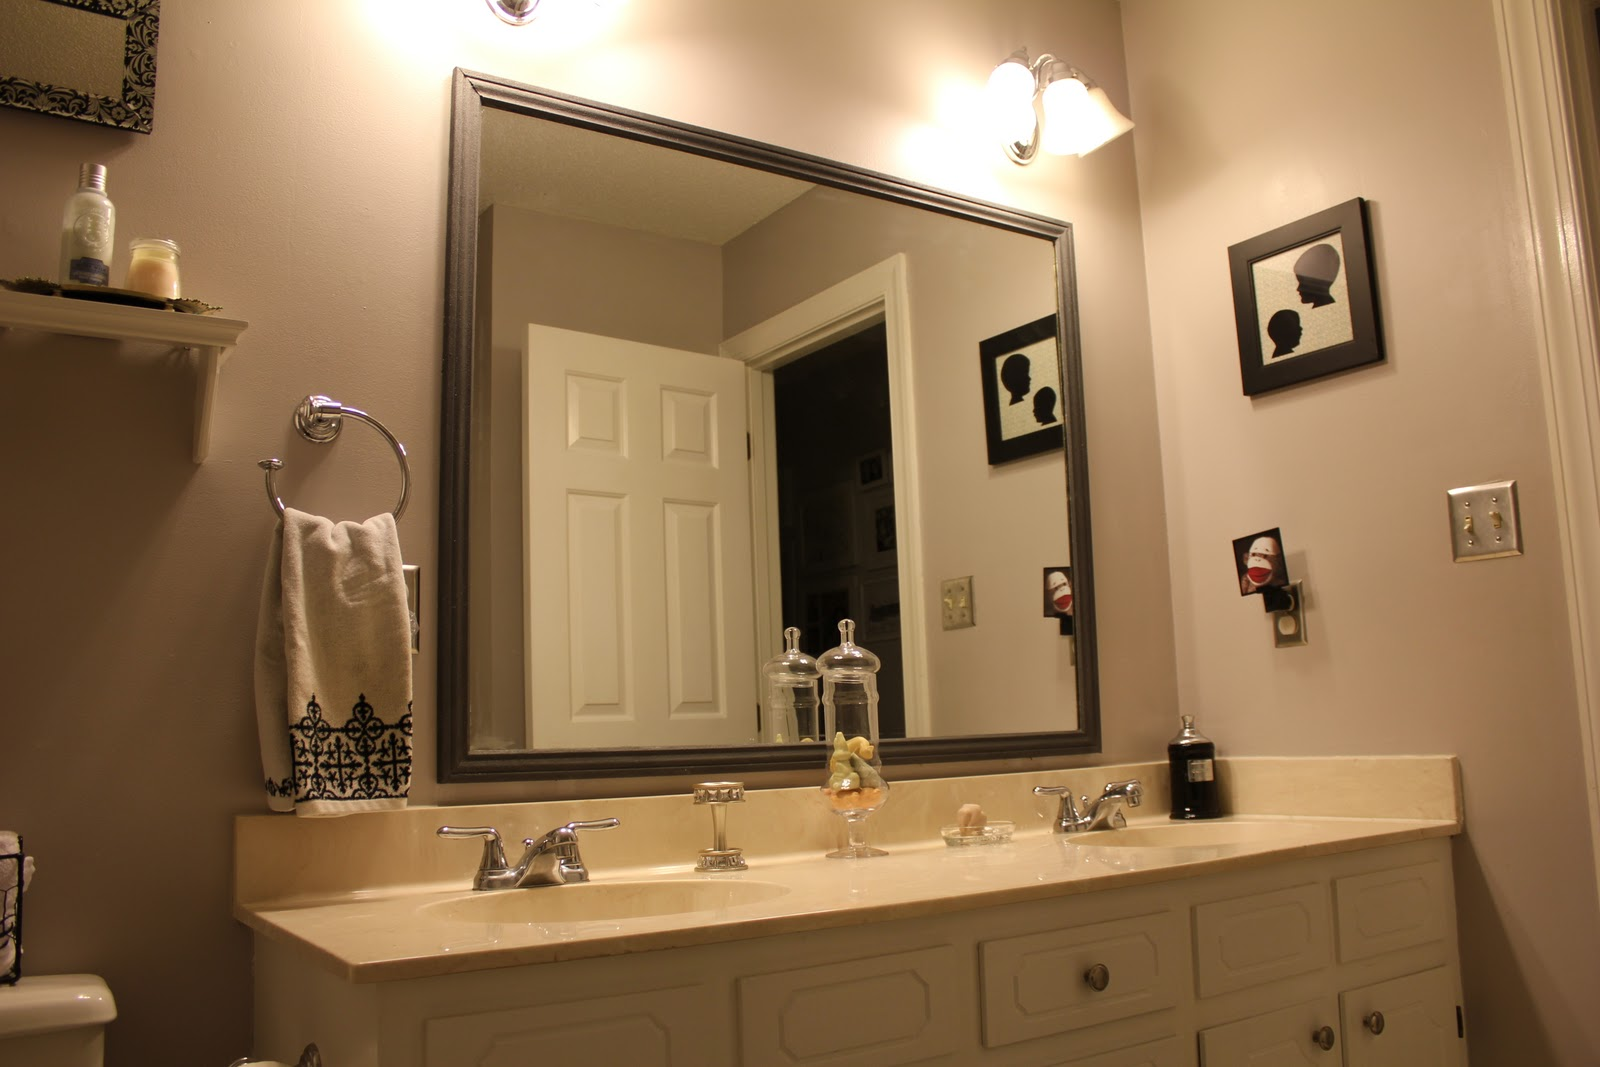 How to frame bathroom mirrors - Choose Grey Framed Bathroom Mirrors For Minimalist Bathroom With White Vanity And Granite Top